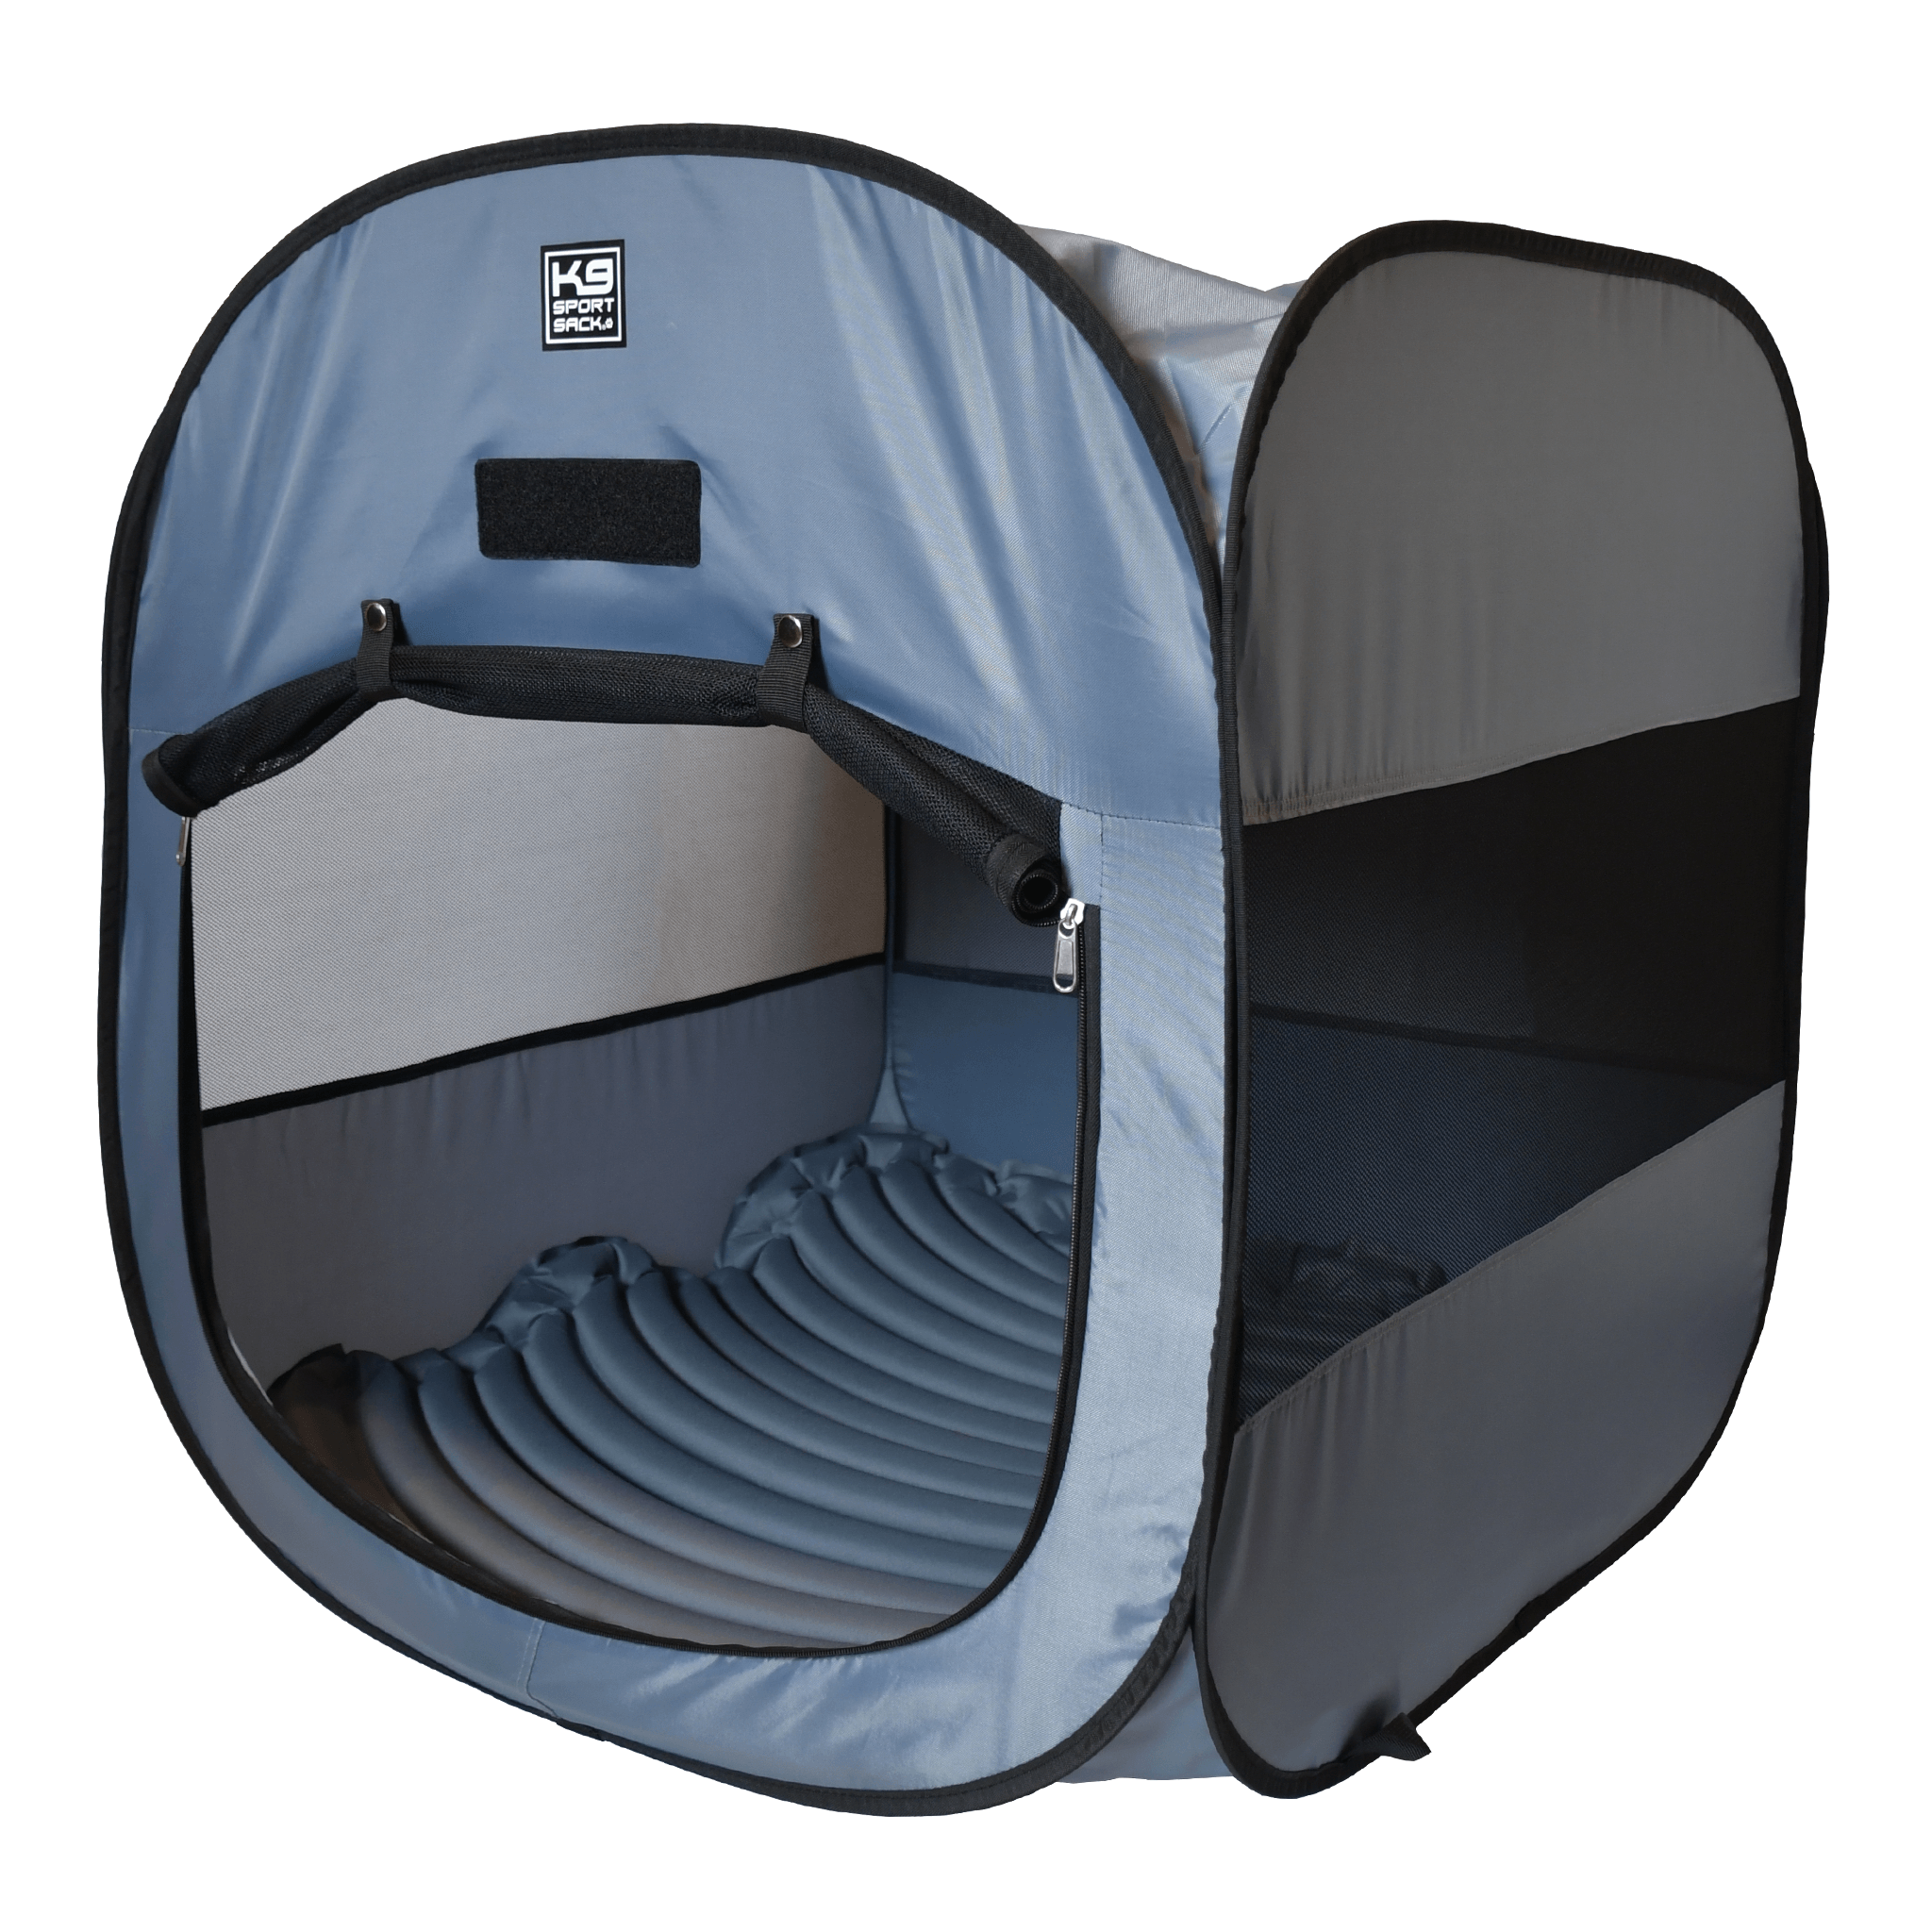 Tent and Bed Bundle